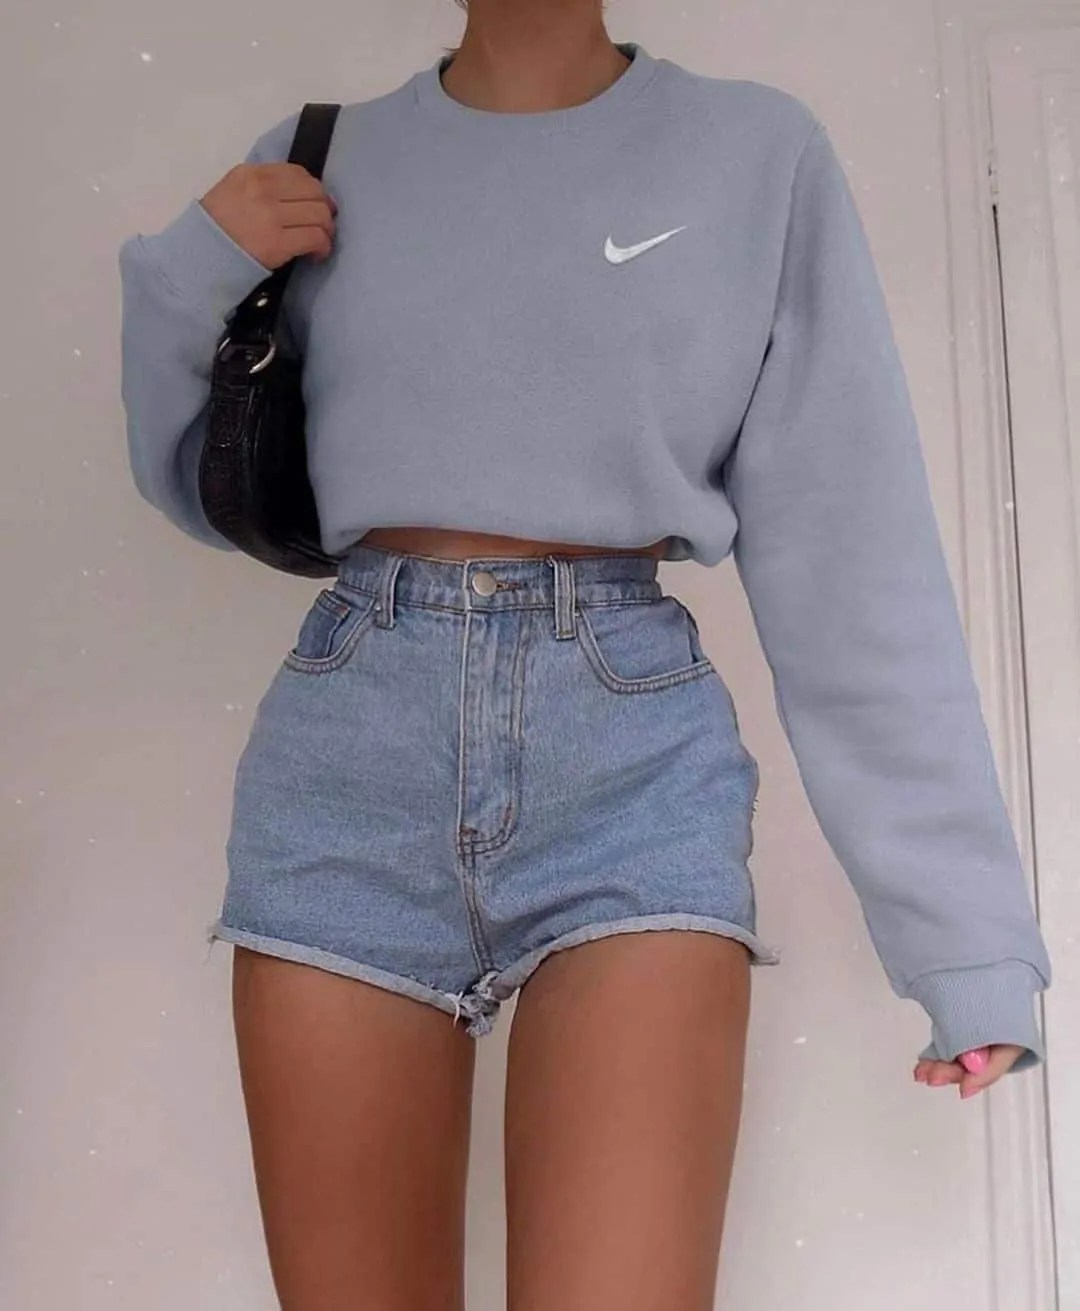 100+ fashion inspo outfits that you have to see no matter what your style is 173